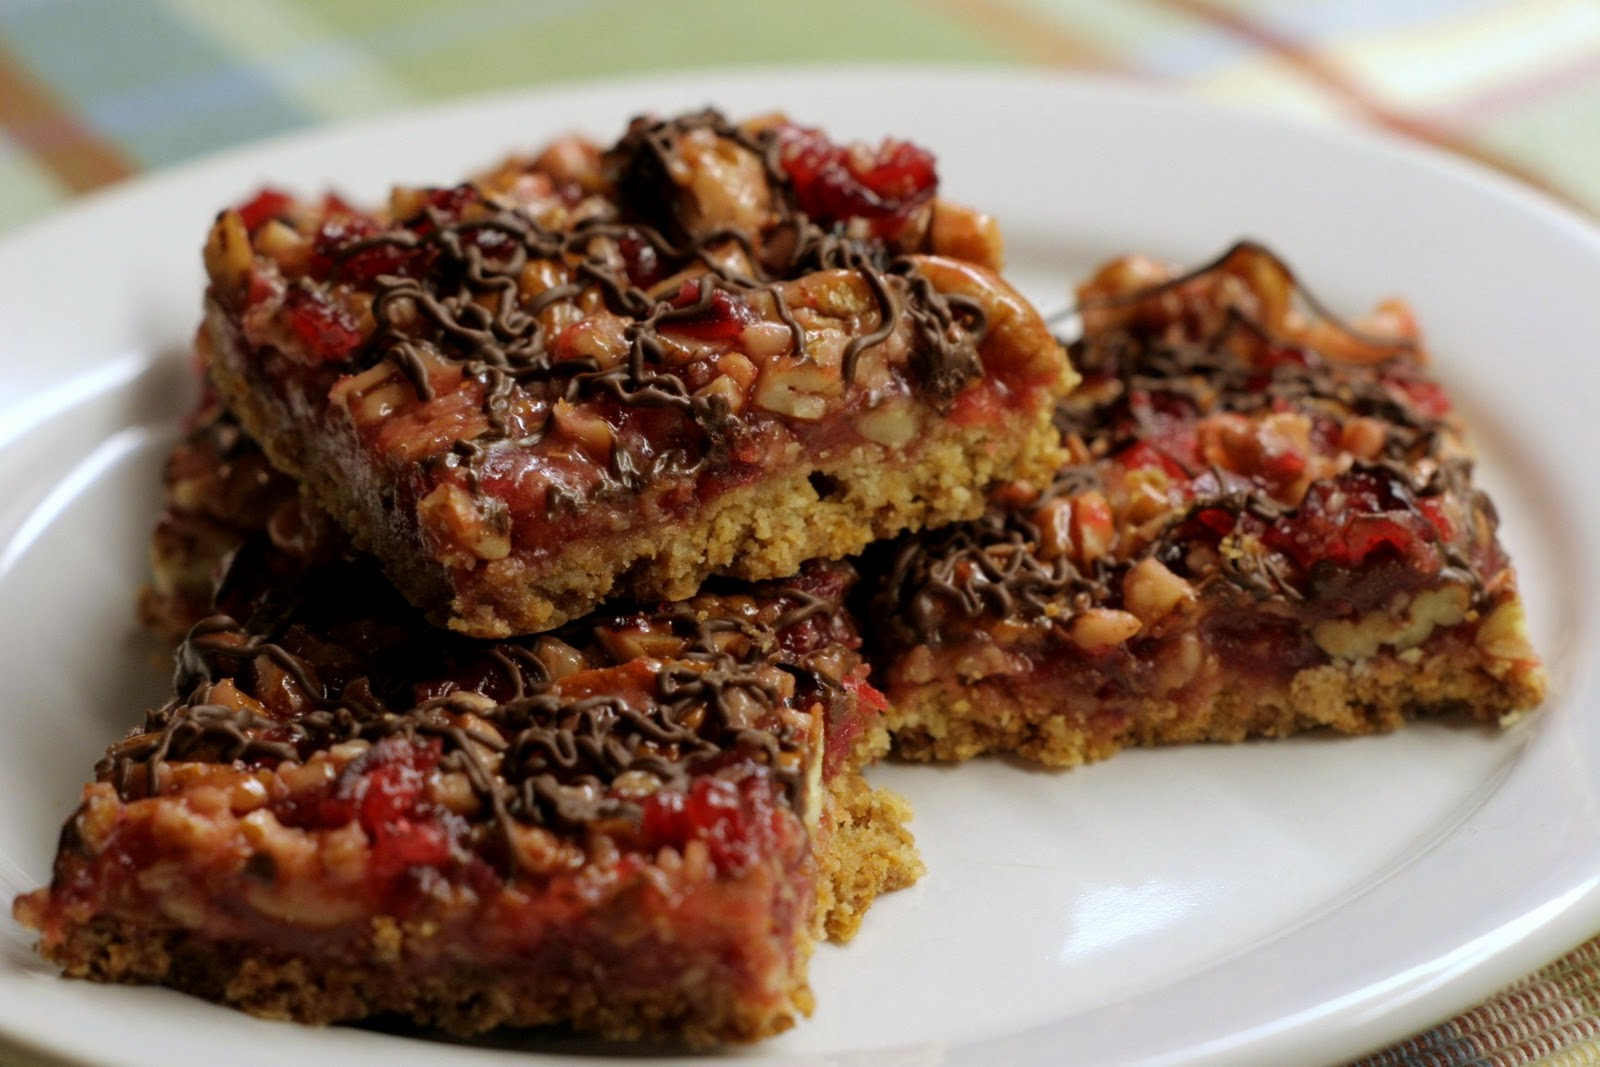 Four seasons of food: Cranberry pecan caramel bars